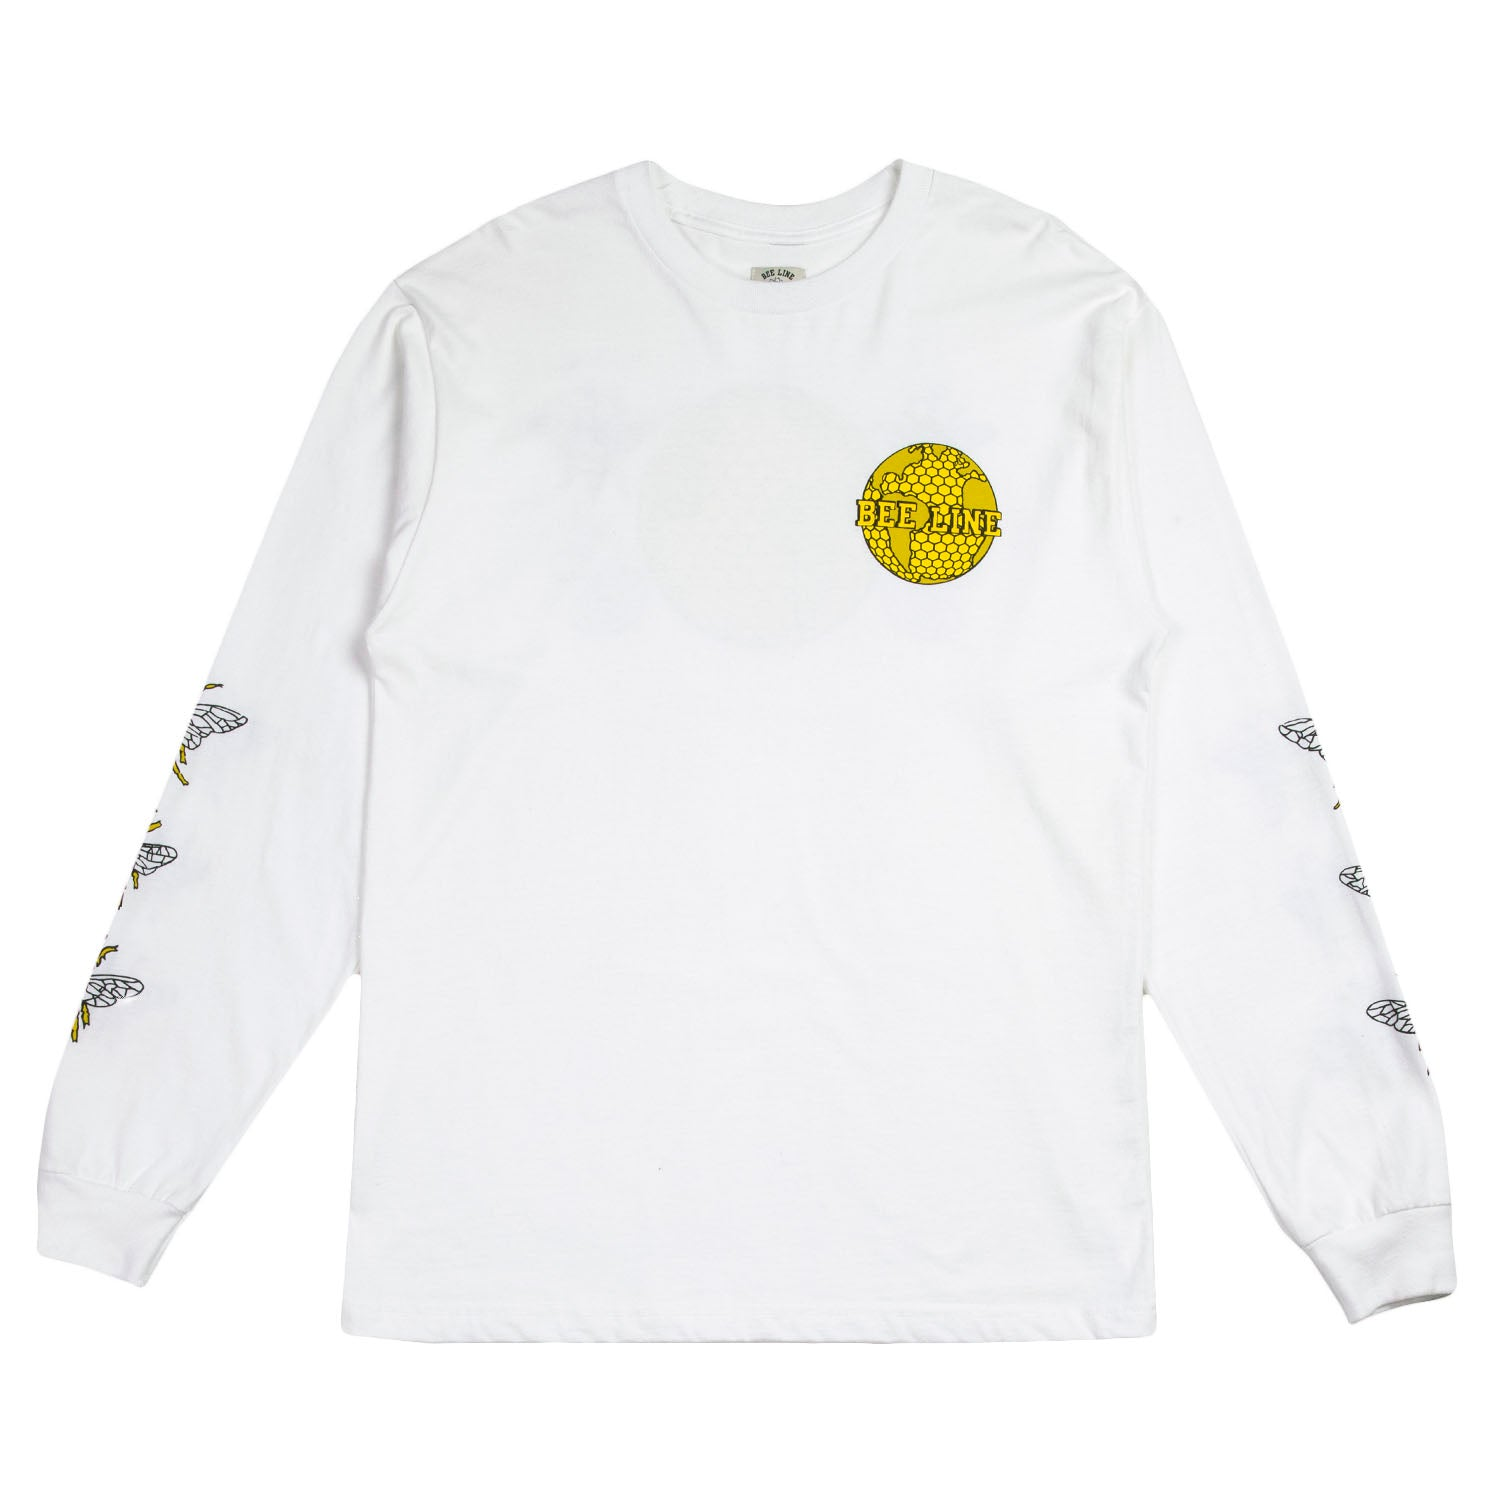 BEE LINE L/S T-SHIRT